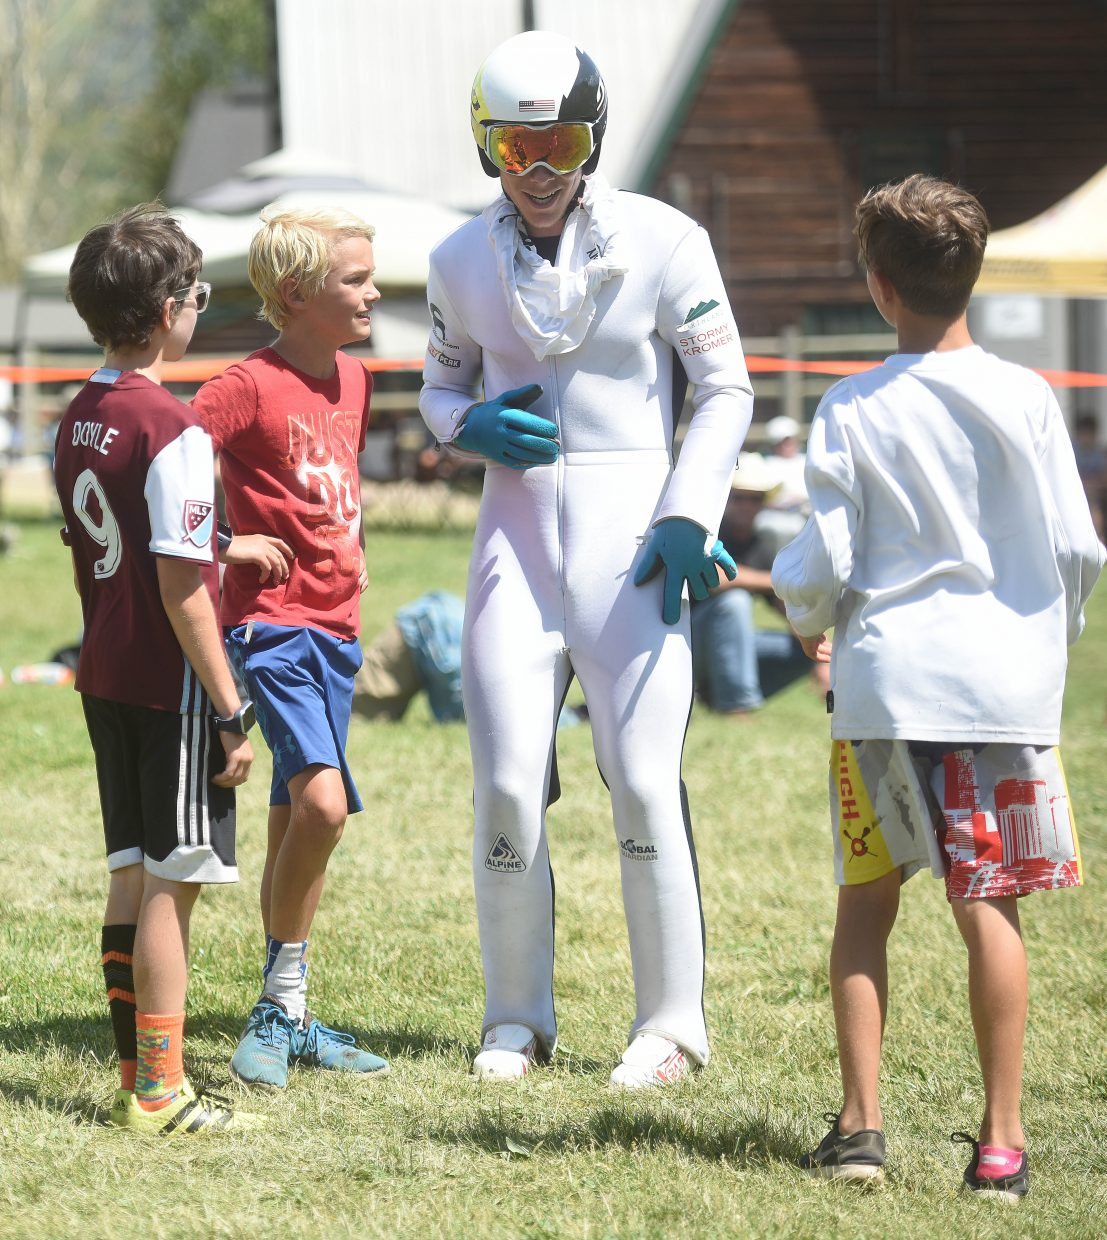 Ben Berend is surrounded by young ski jumpers during the Fourth of July ski jumping competition in Steamboat Springs.